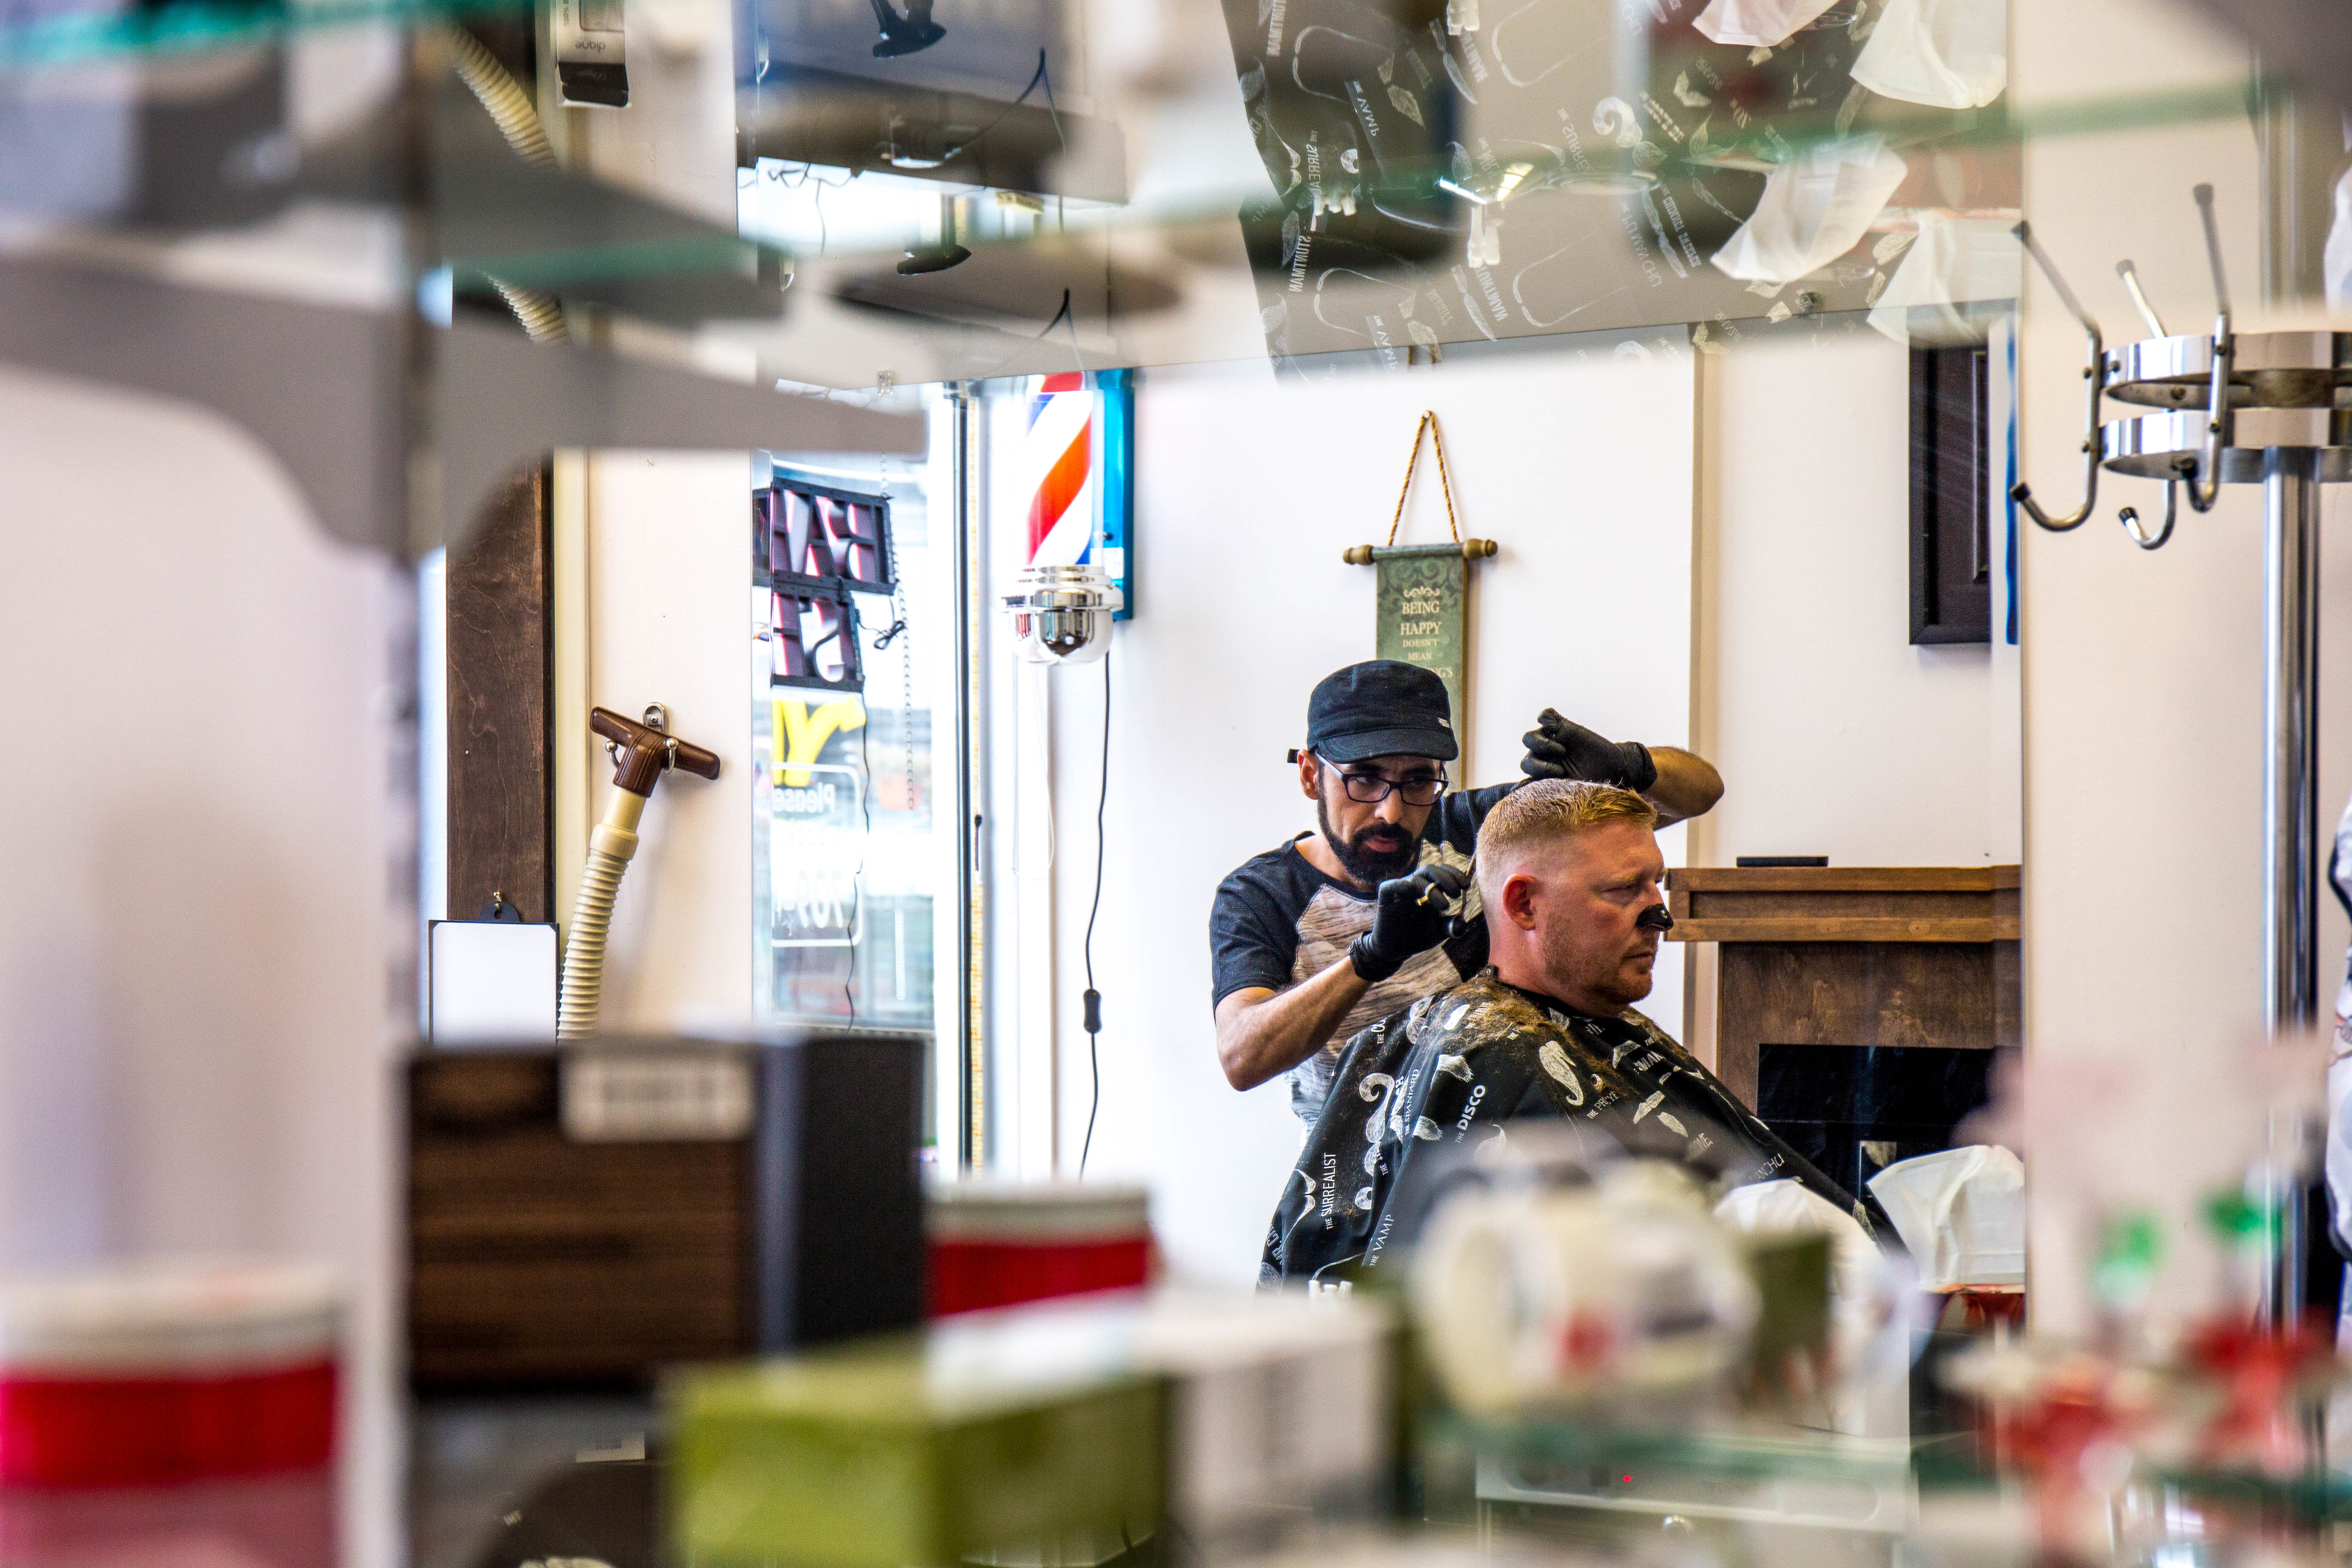 Customer Chad Parsons gets Mohamad Almaidani's complete attention during his haircut. (Lindsay Bird/CBC)